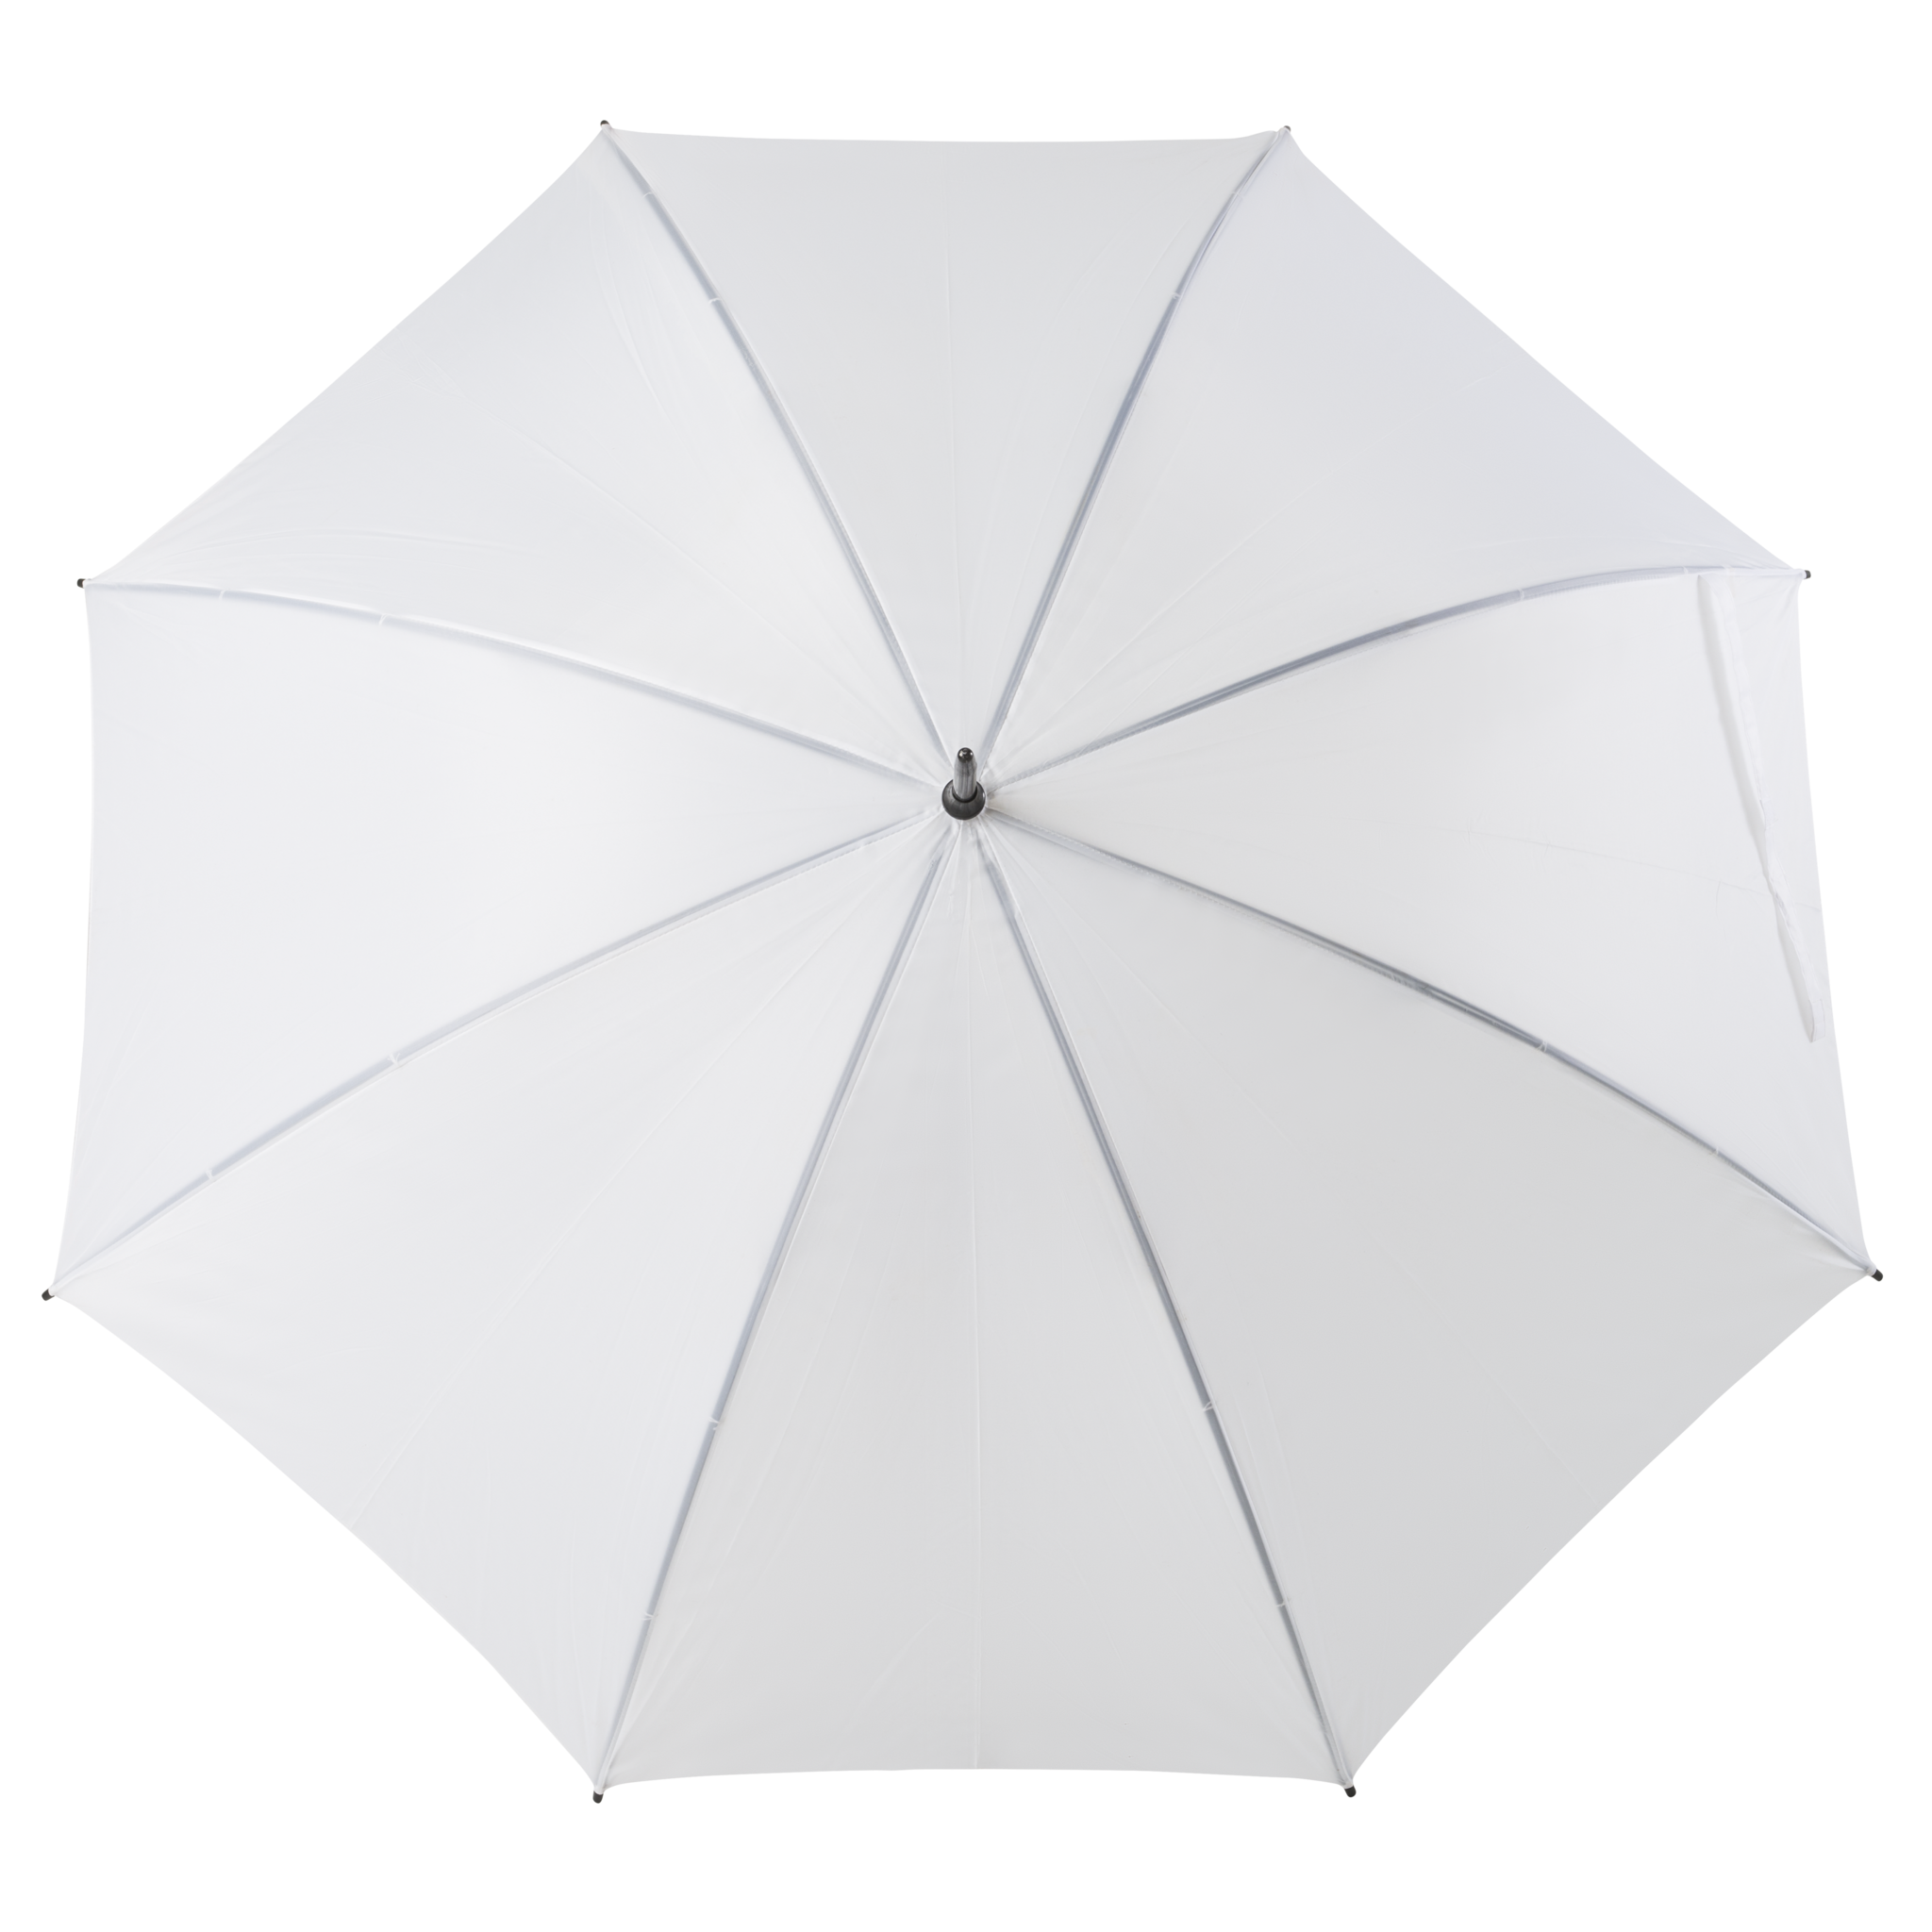 White umbrella png. Weather or not accessories